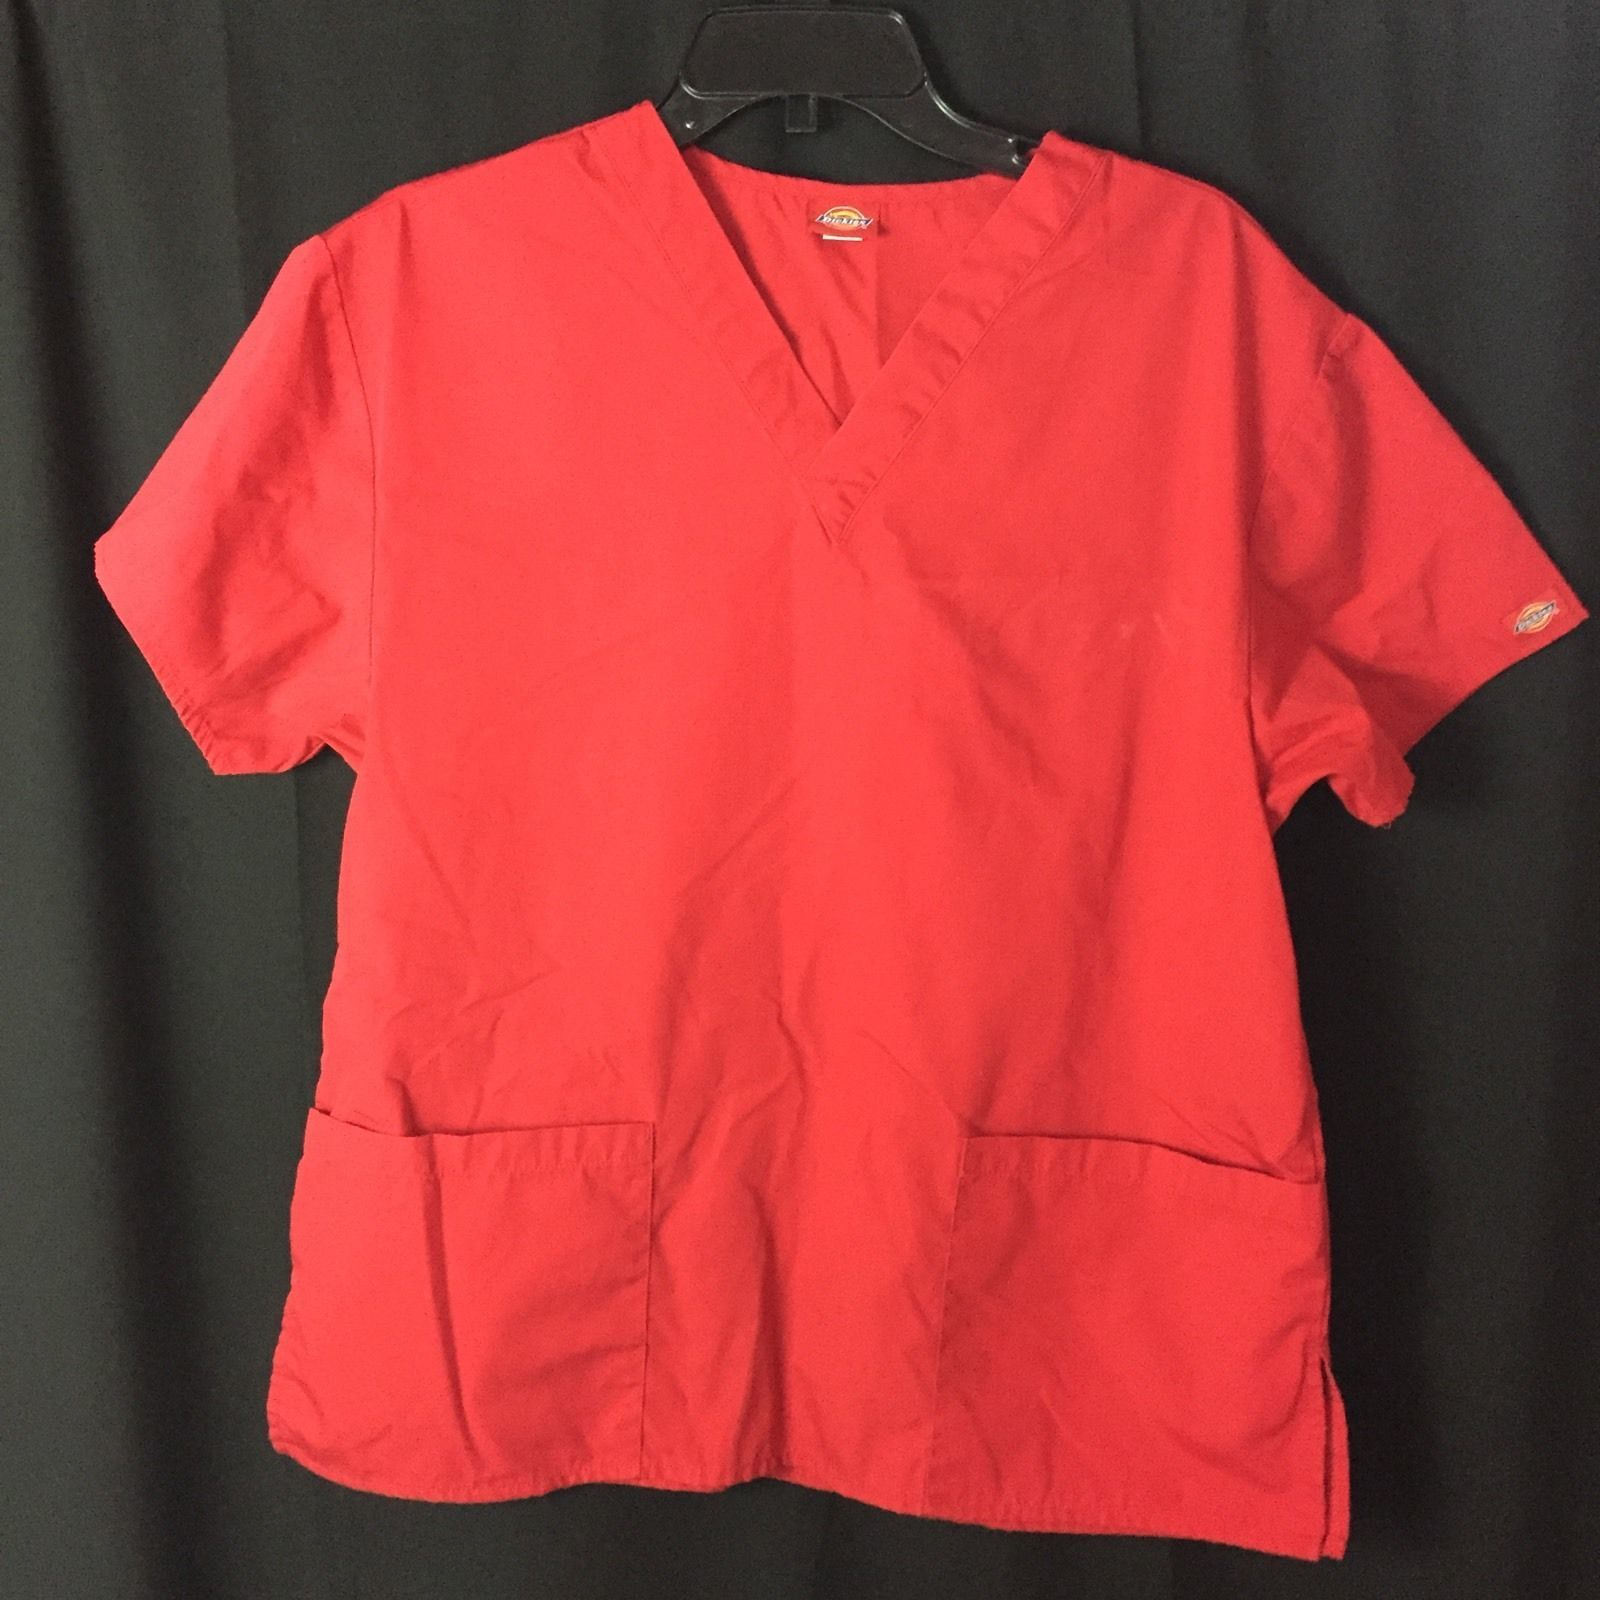 Primary image for Unisex Dickies Solid Red Scrub Top *No Tag*